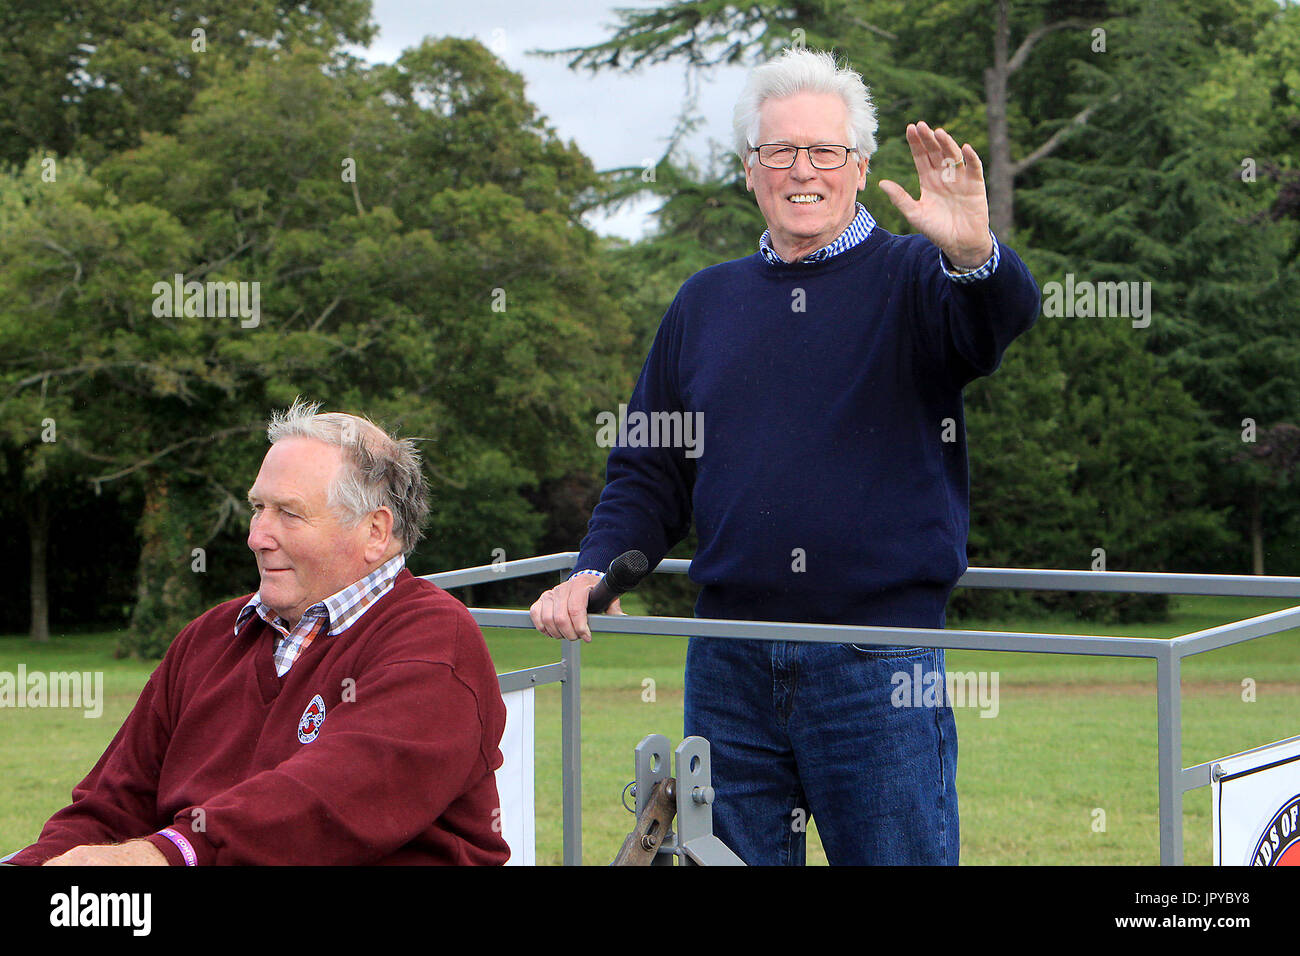 Woodstock, Oxfordshire, UK. 3rd Aug, 2017. Presenter John Craven arrives in style on the first day of Countryfile Live which is on for four days at Blenheim Palace Picture: Ric Mellis 3/8/2017 Credit: Ric Mellis/Alamy Live News - Stock Image